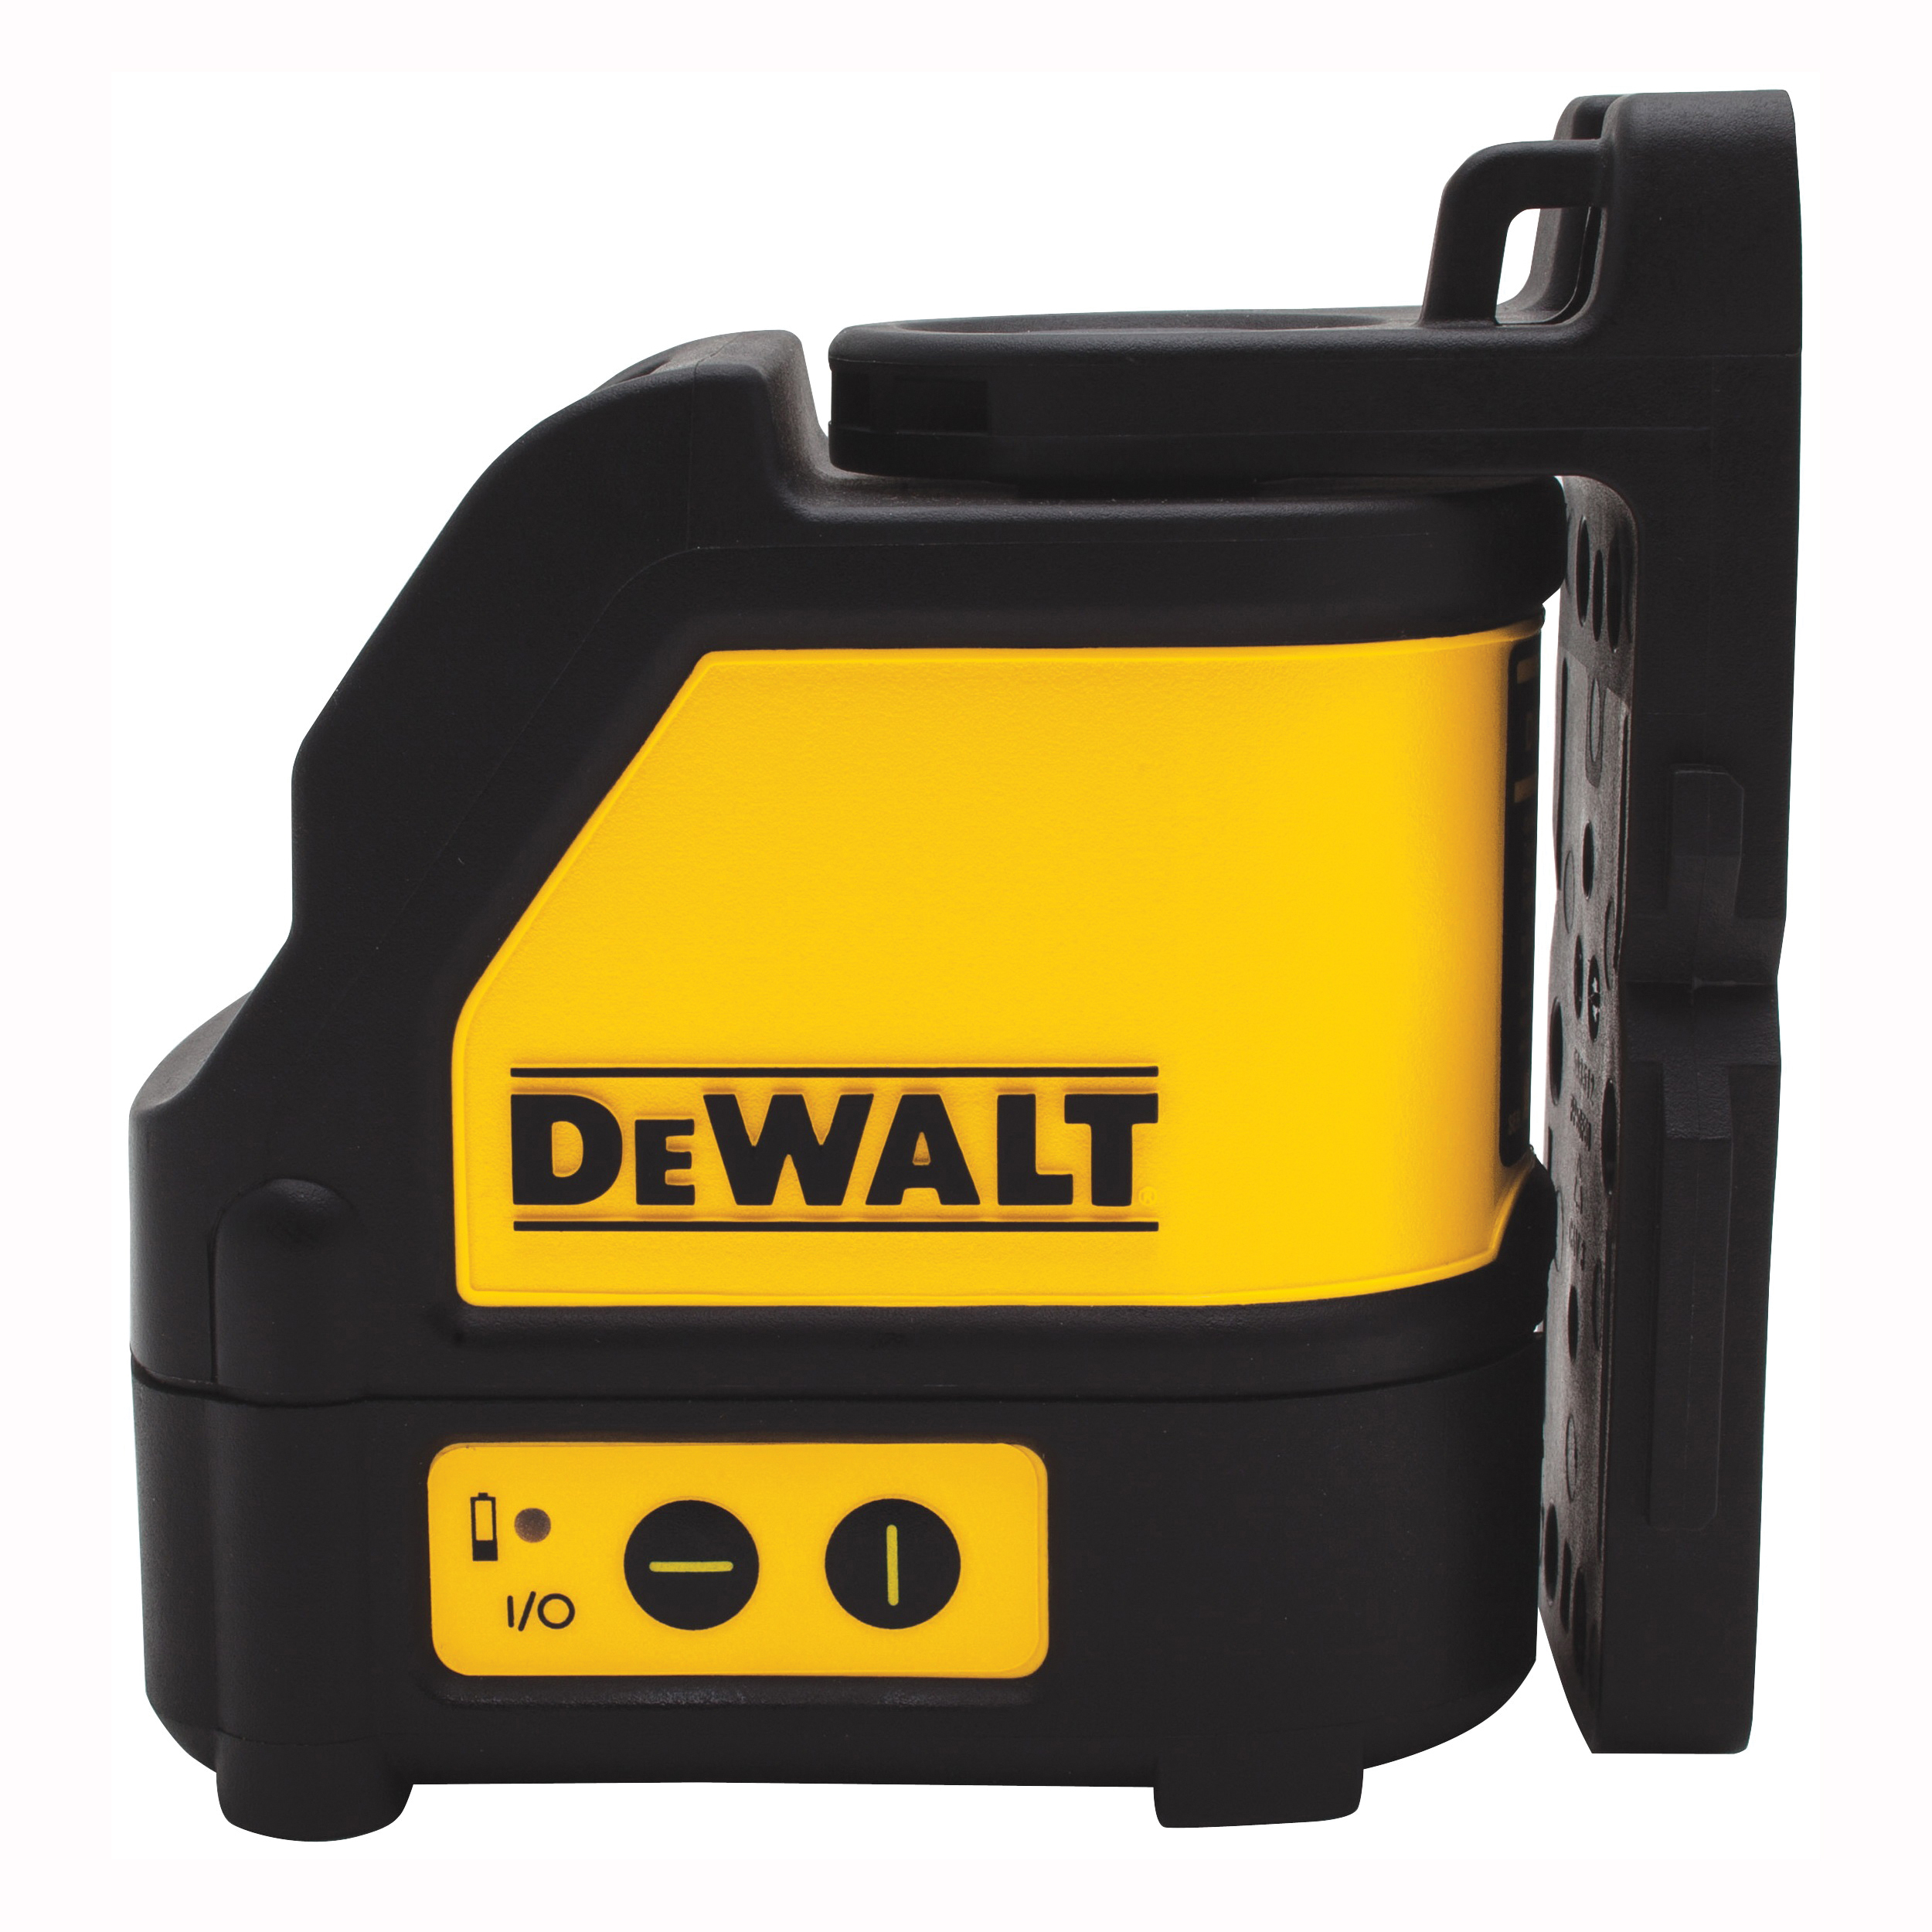 Picture of DeWALT DW088CG-QU Laser Level, 165 ft, +/-1/8 in Accuracy, Green Laser